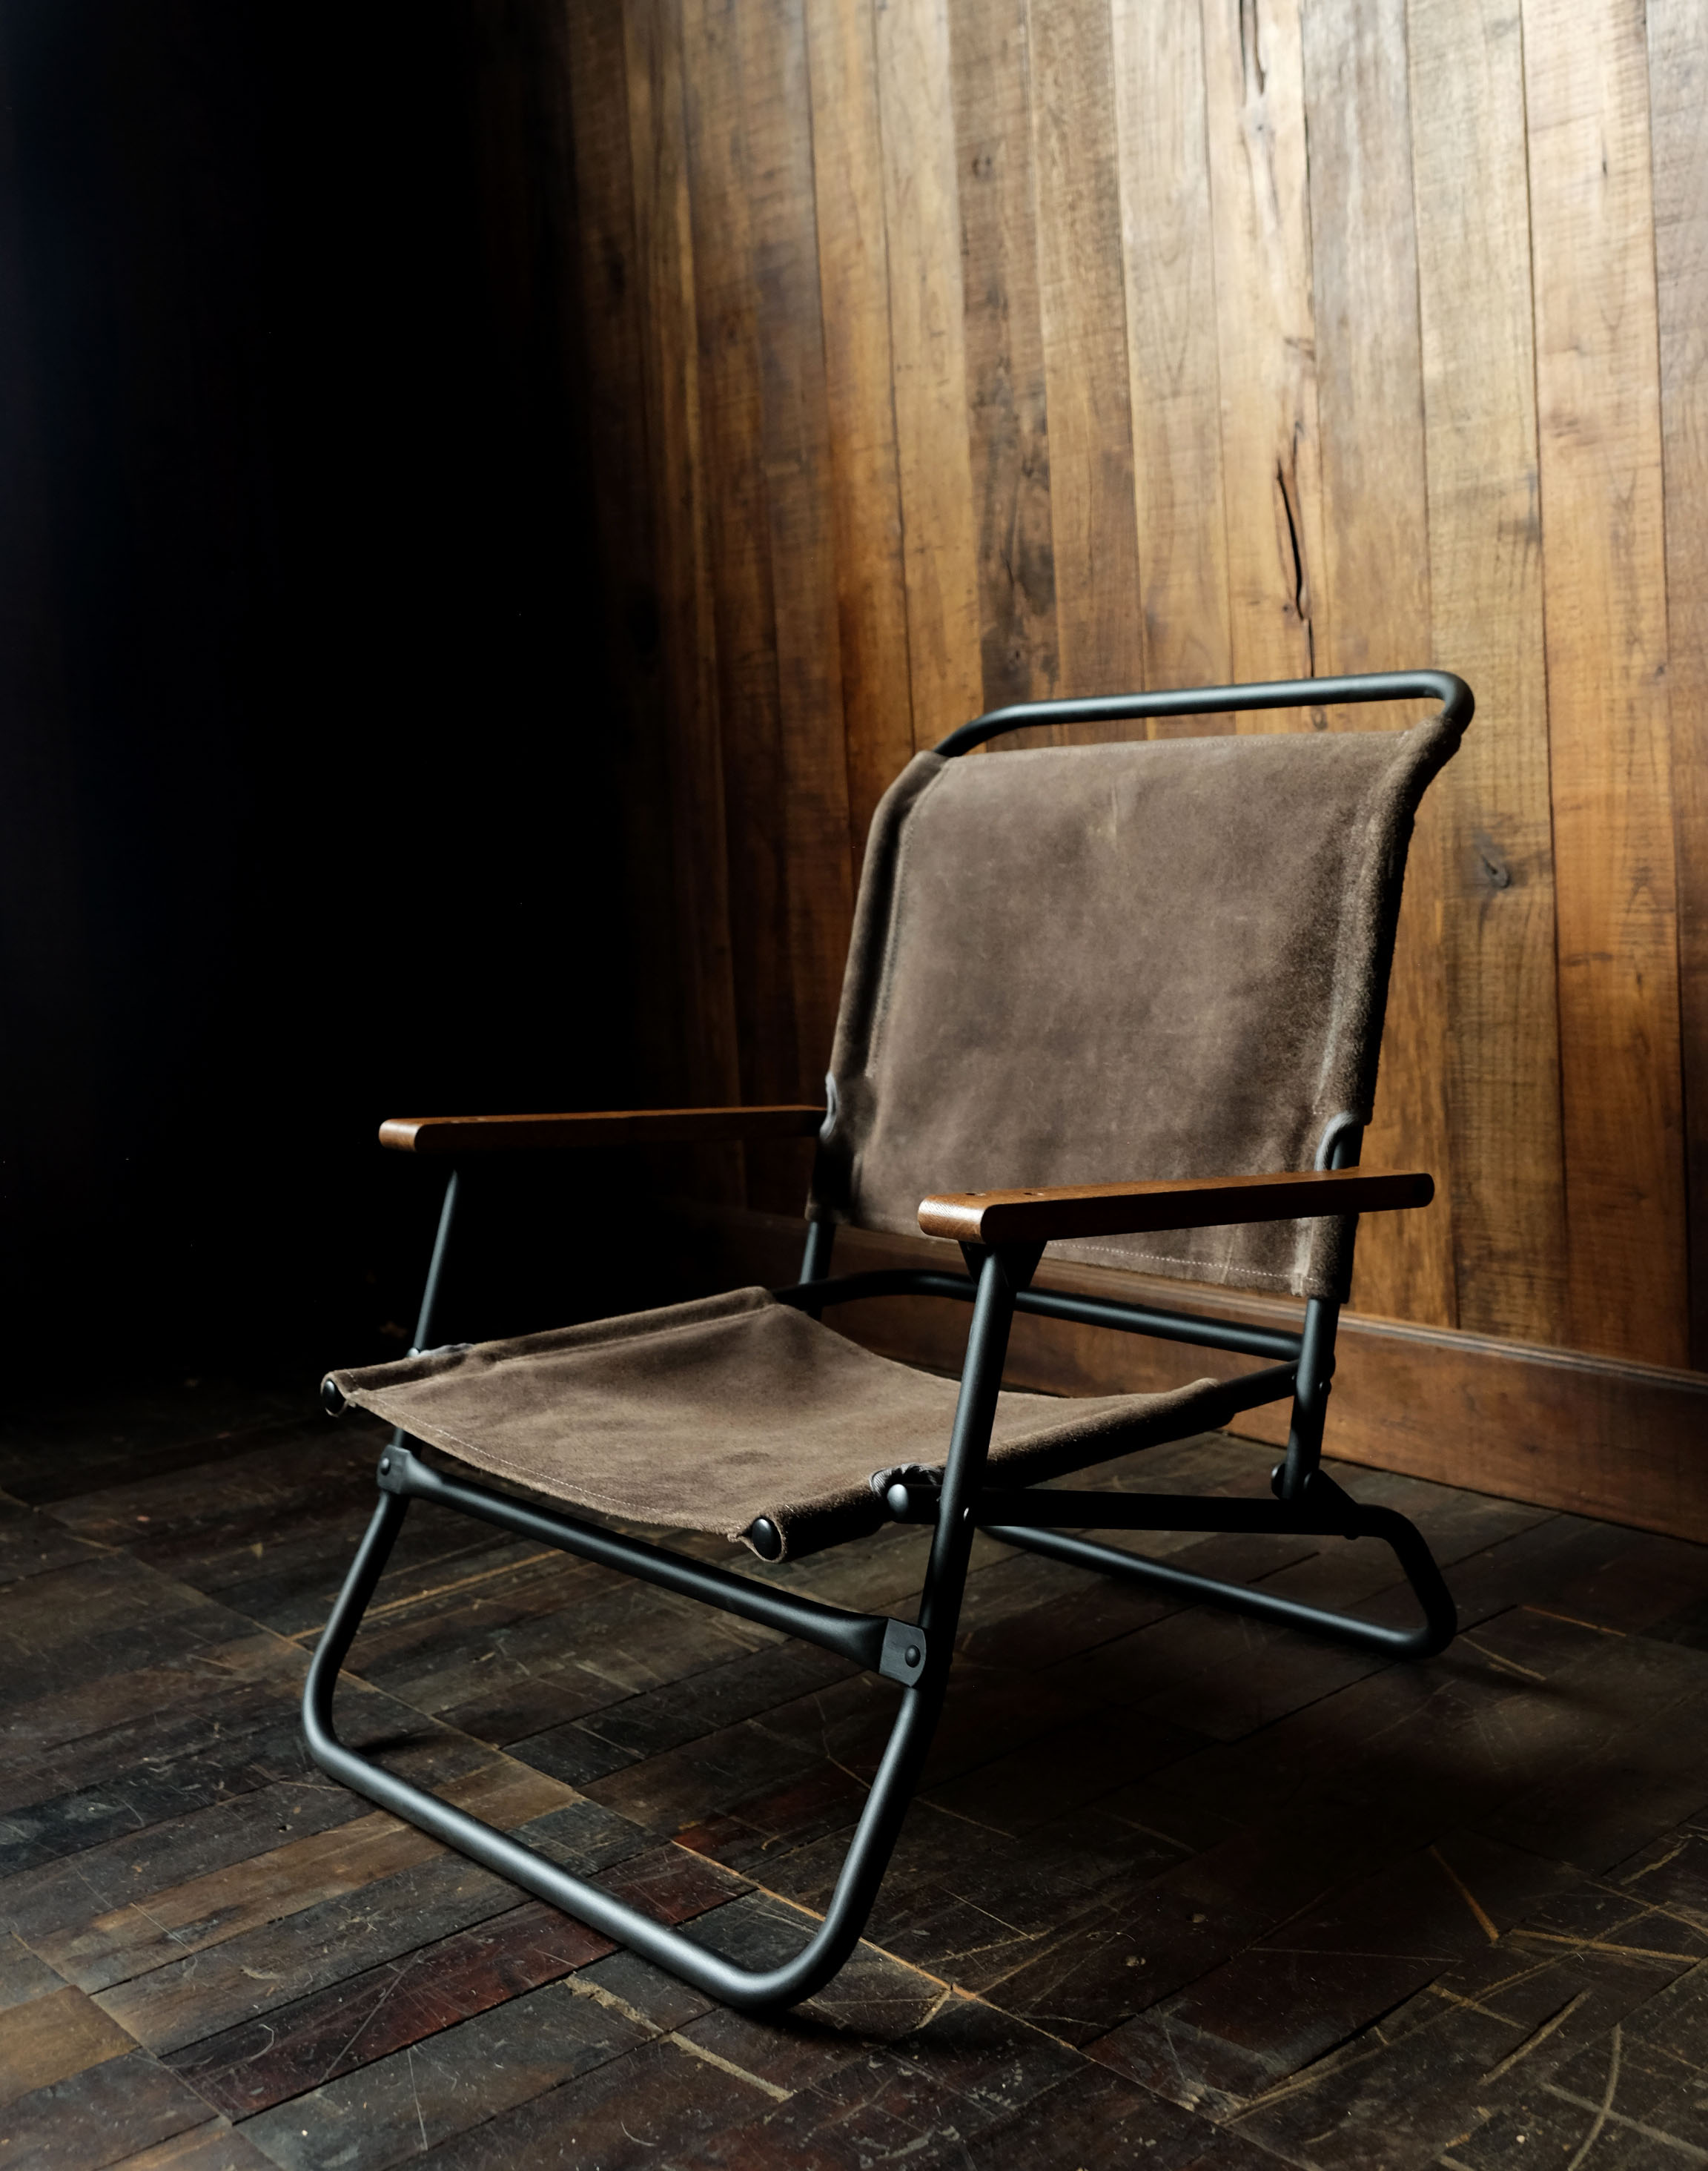 hobo×TRUCK Waterproof Leather Folding Low Chair